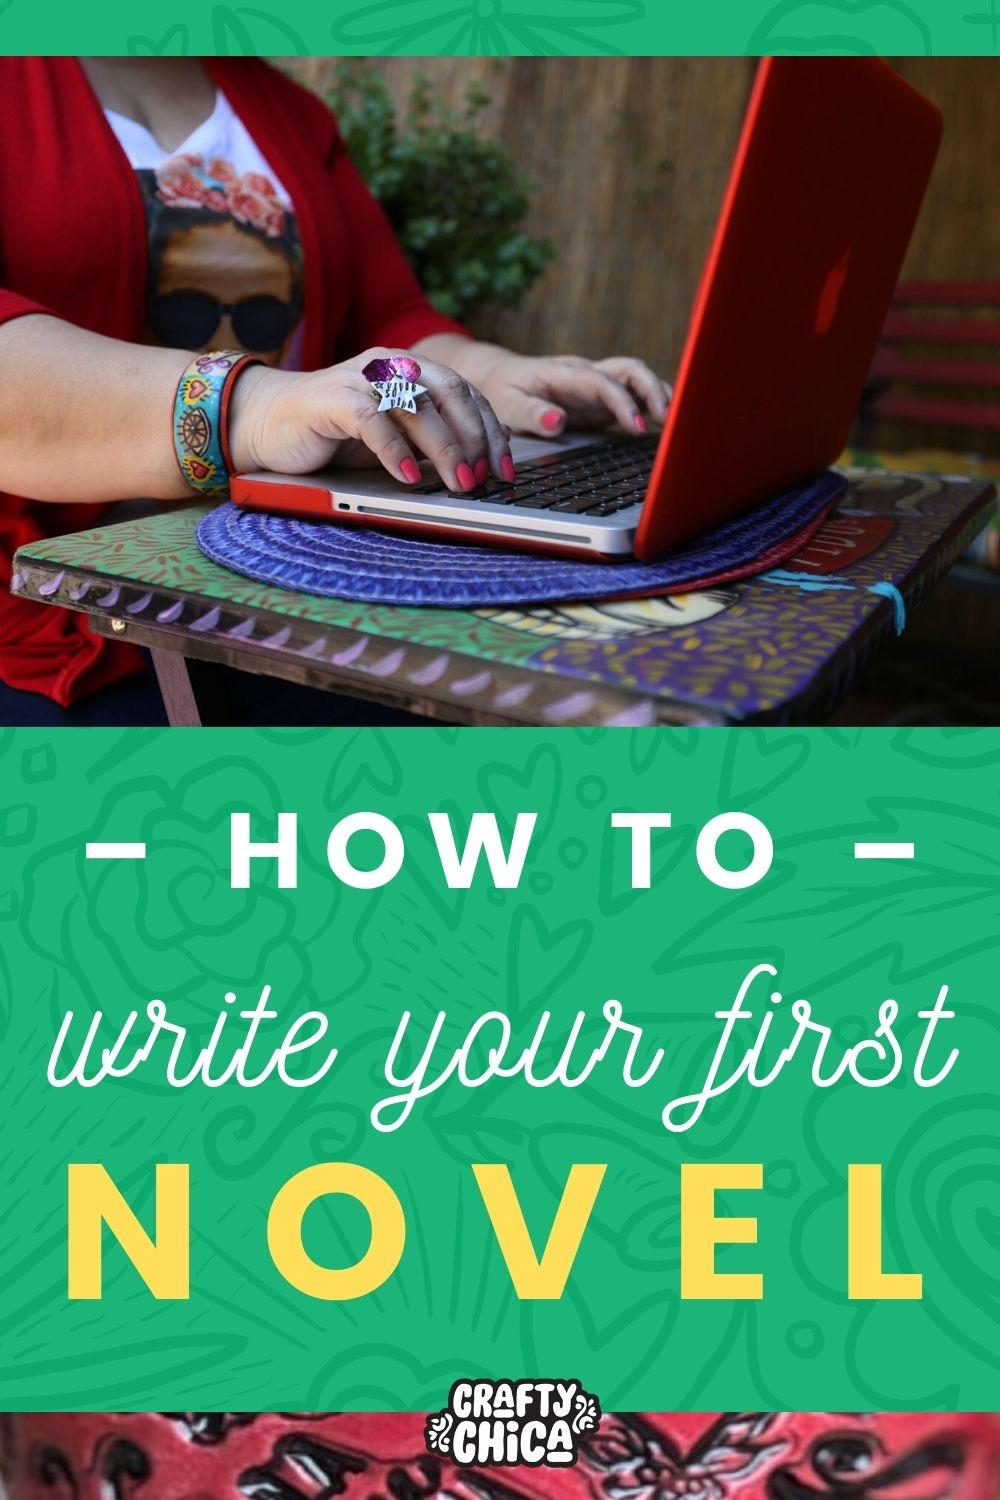 Tips for writing your first novel! #craftychica #latinxwriters #latinxbooks